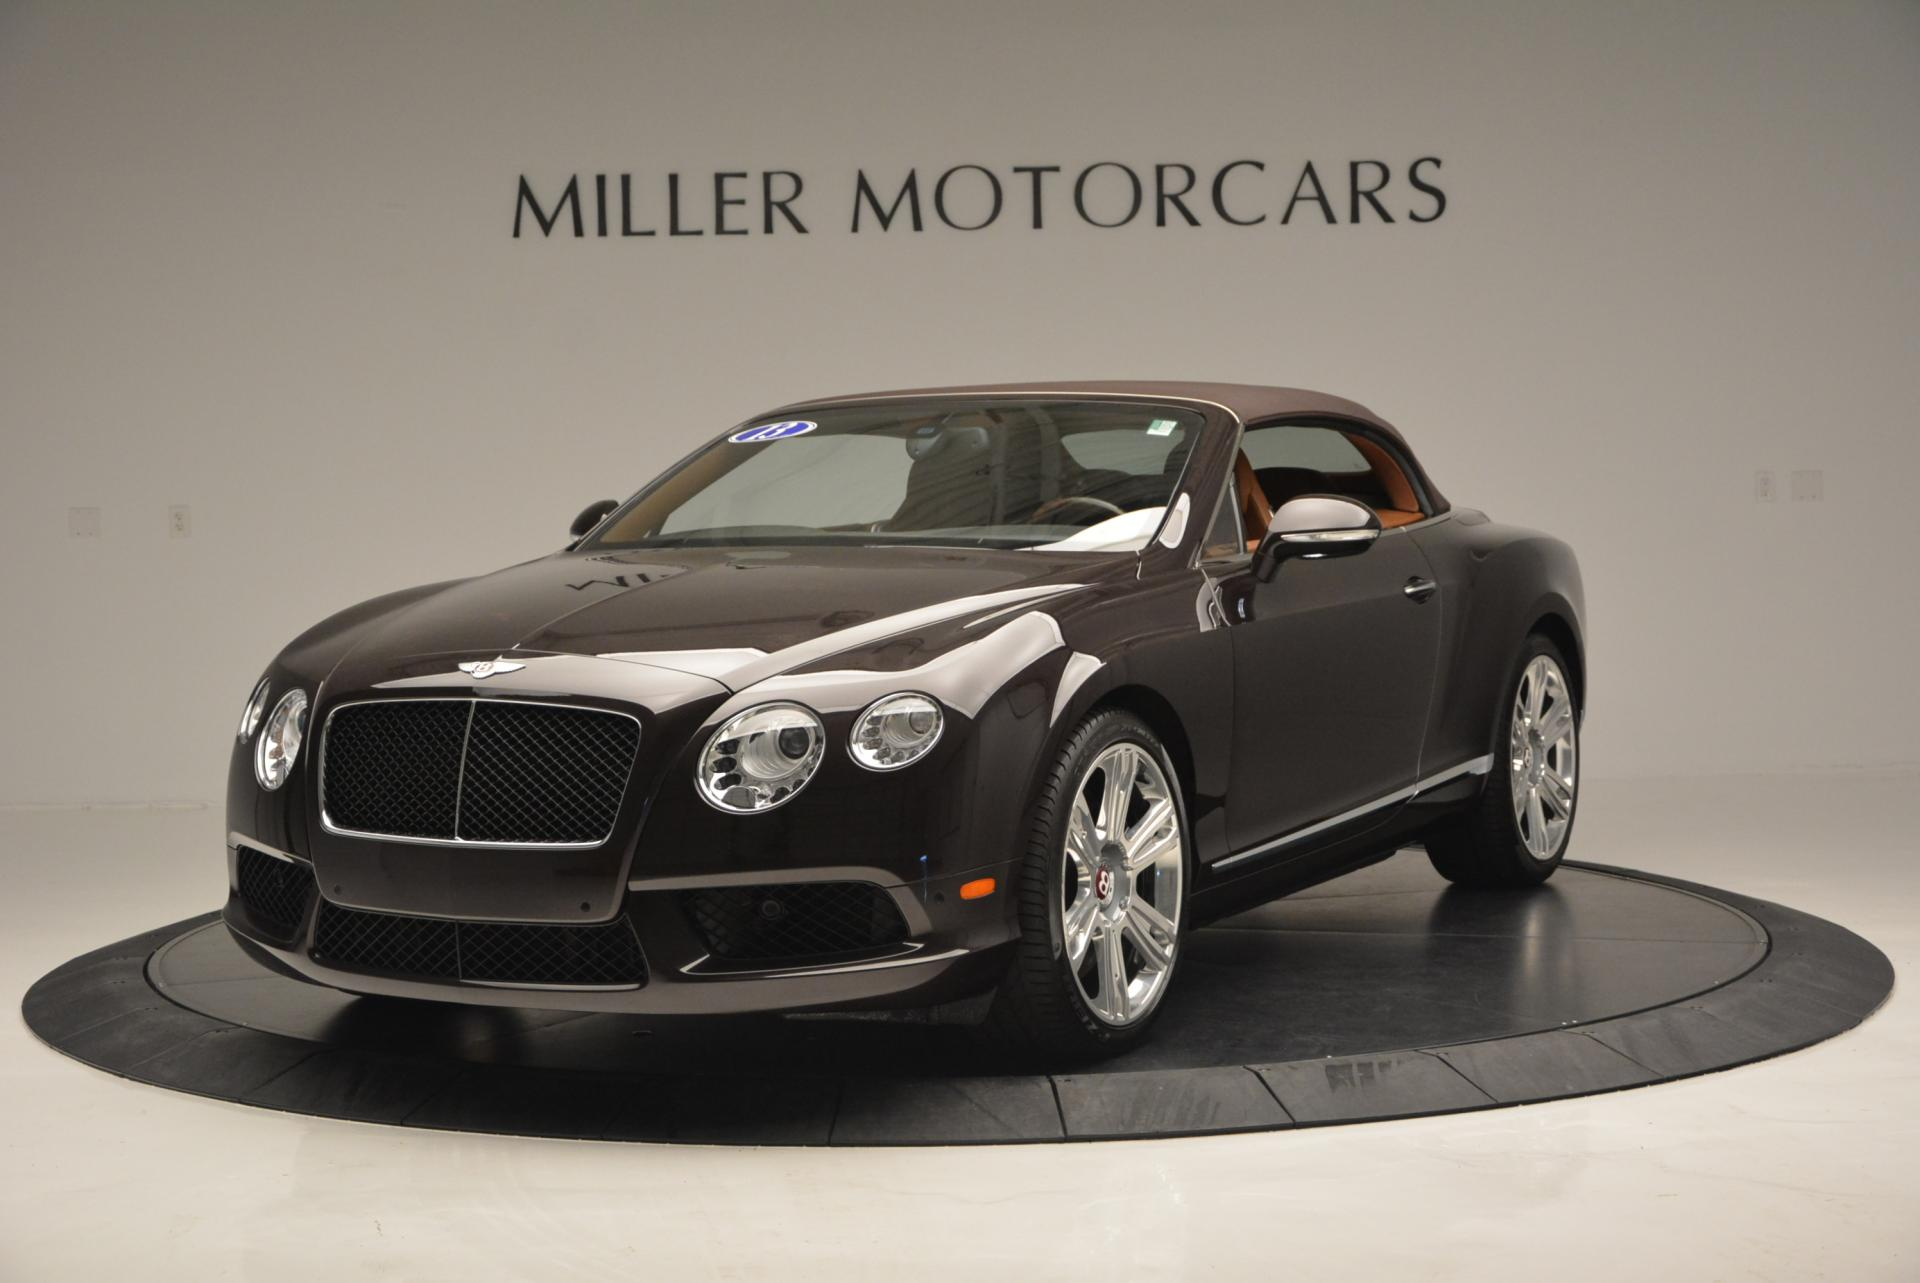 Used 2013 Bentley Continental GTC V8  For Sale In Greenwich, CT. Alfa Romeo of Greenwich, 7059 498_p14